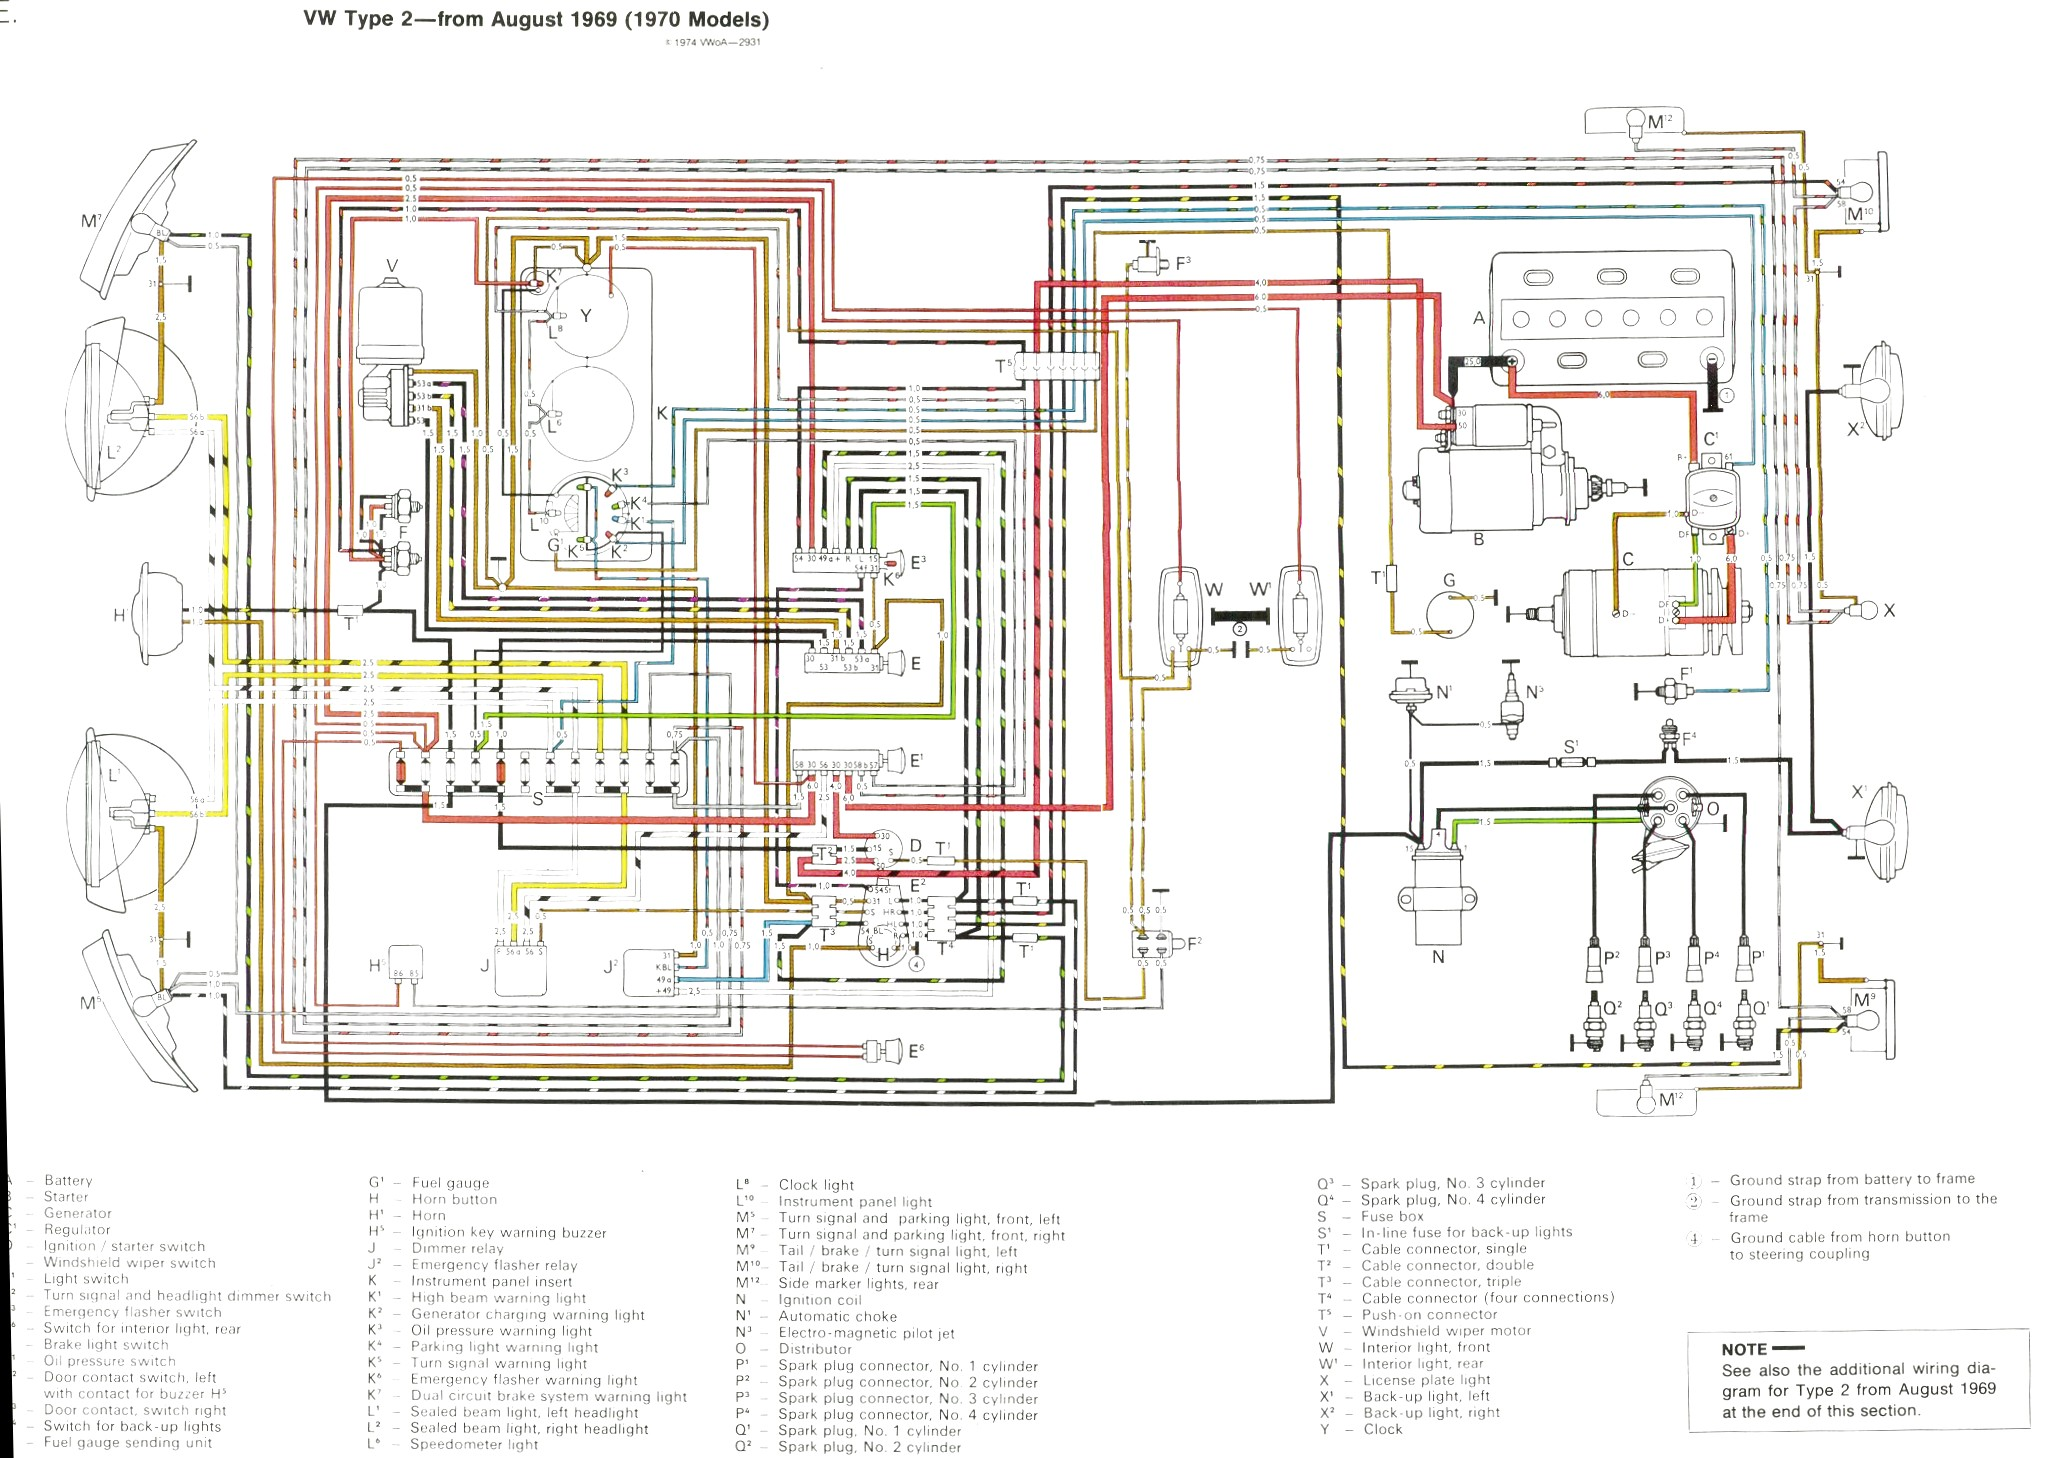 bus 69 70 vintagebus com vw bus (and other) wiring diagrams 1965 vw beetle wiring diagram at nearapp.co